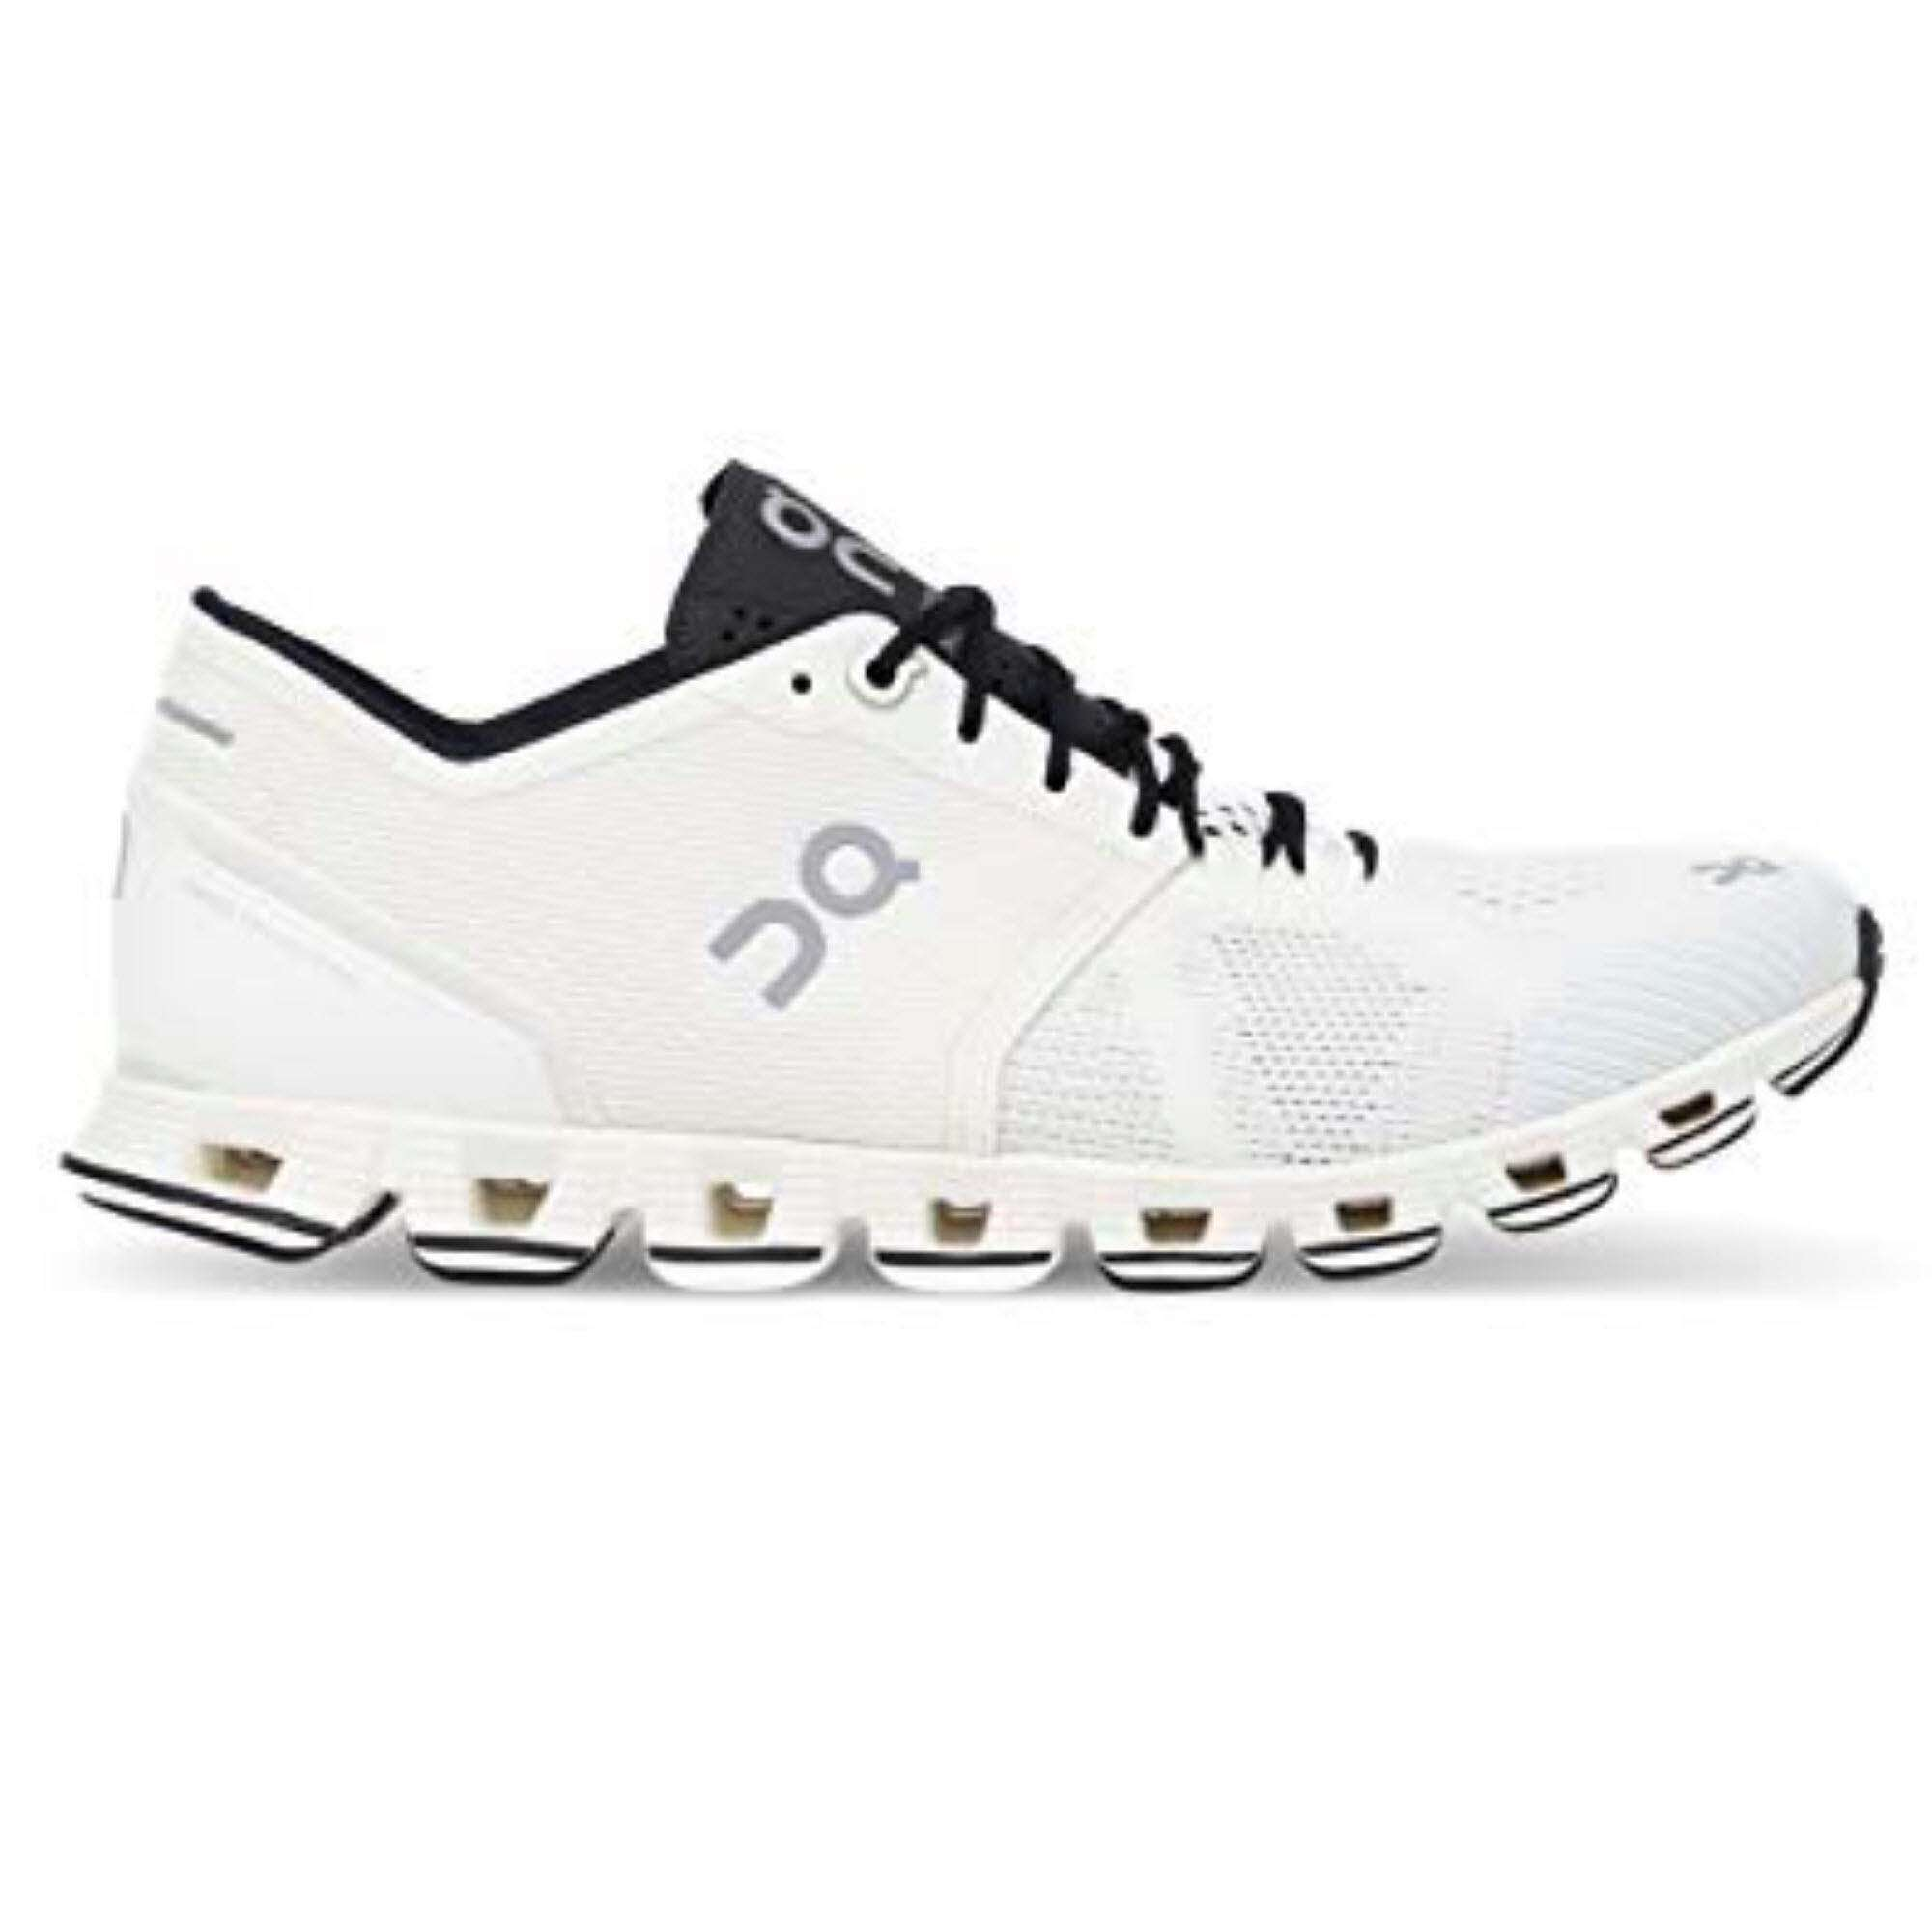 ON RUNNING Schuh Cloud X 0006 White Black